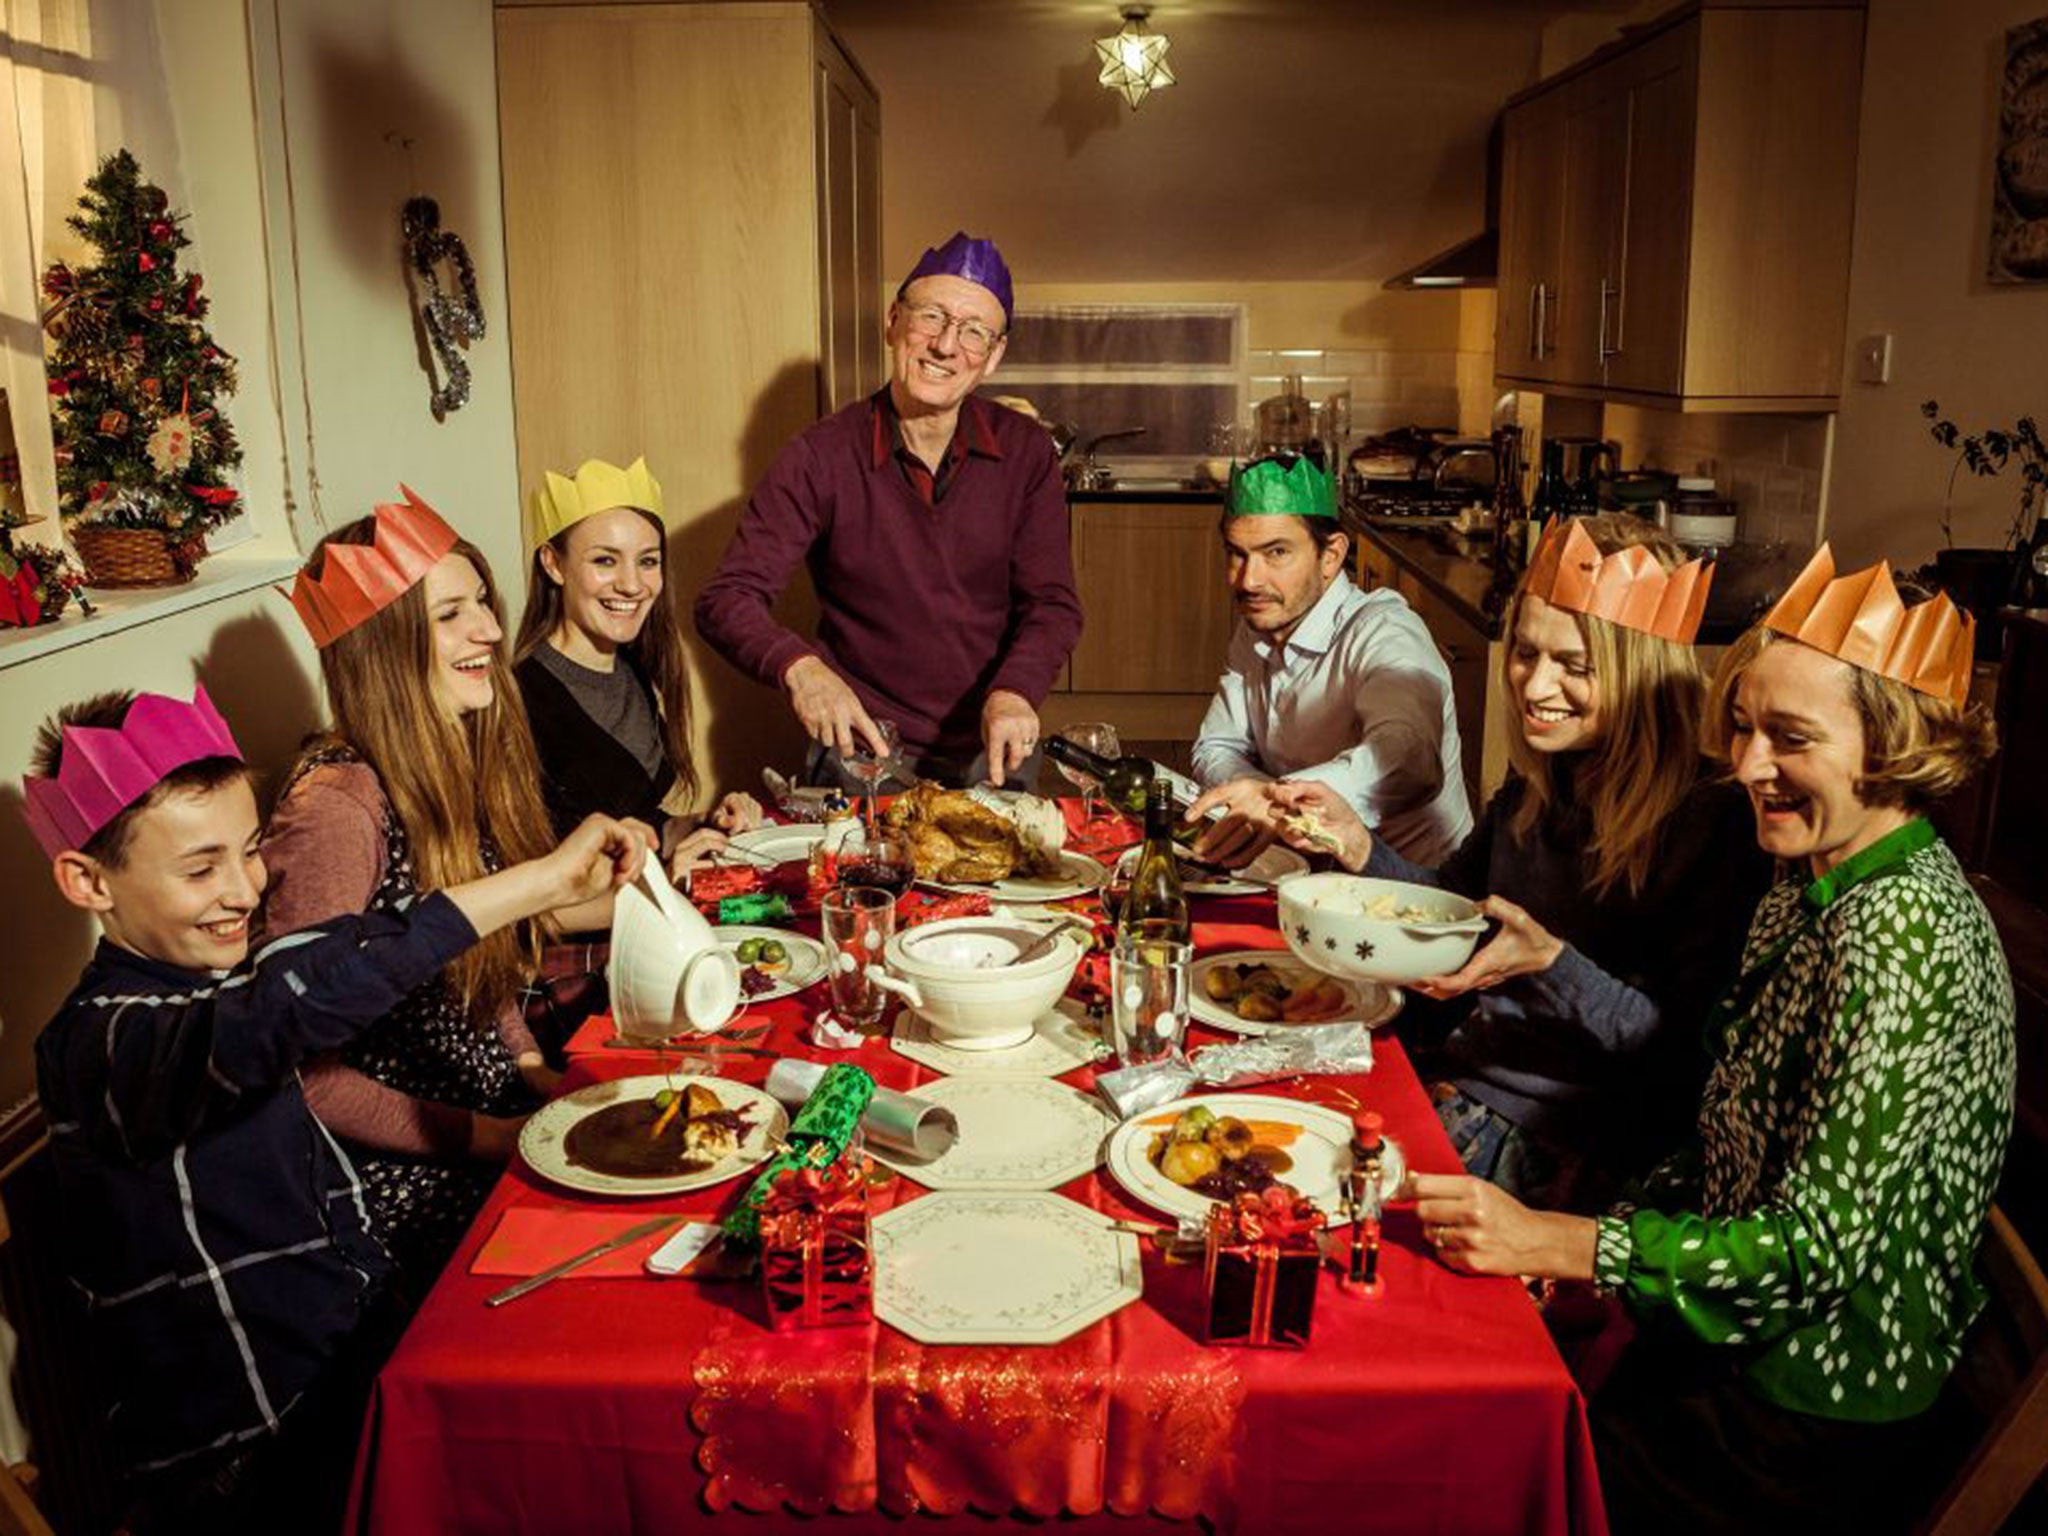 Christmas Family Dinners  Christmas dinner is £5 cheaper this year as food prices